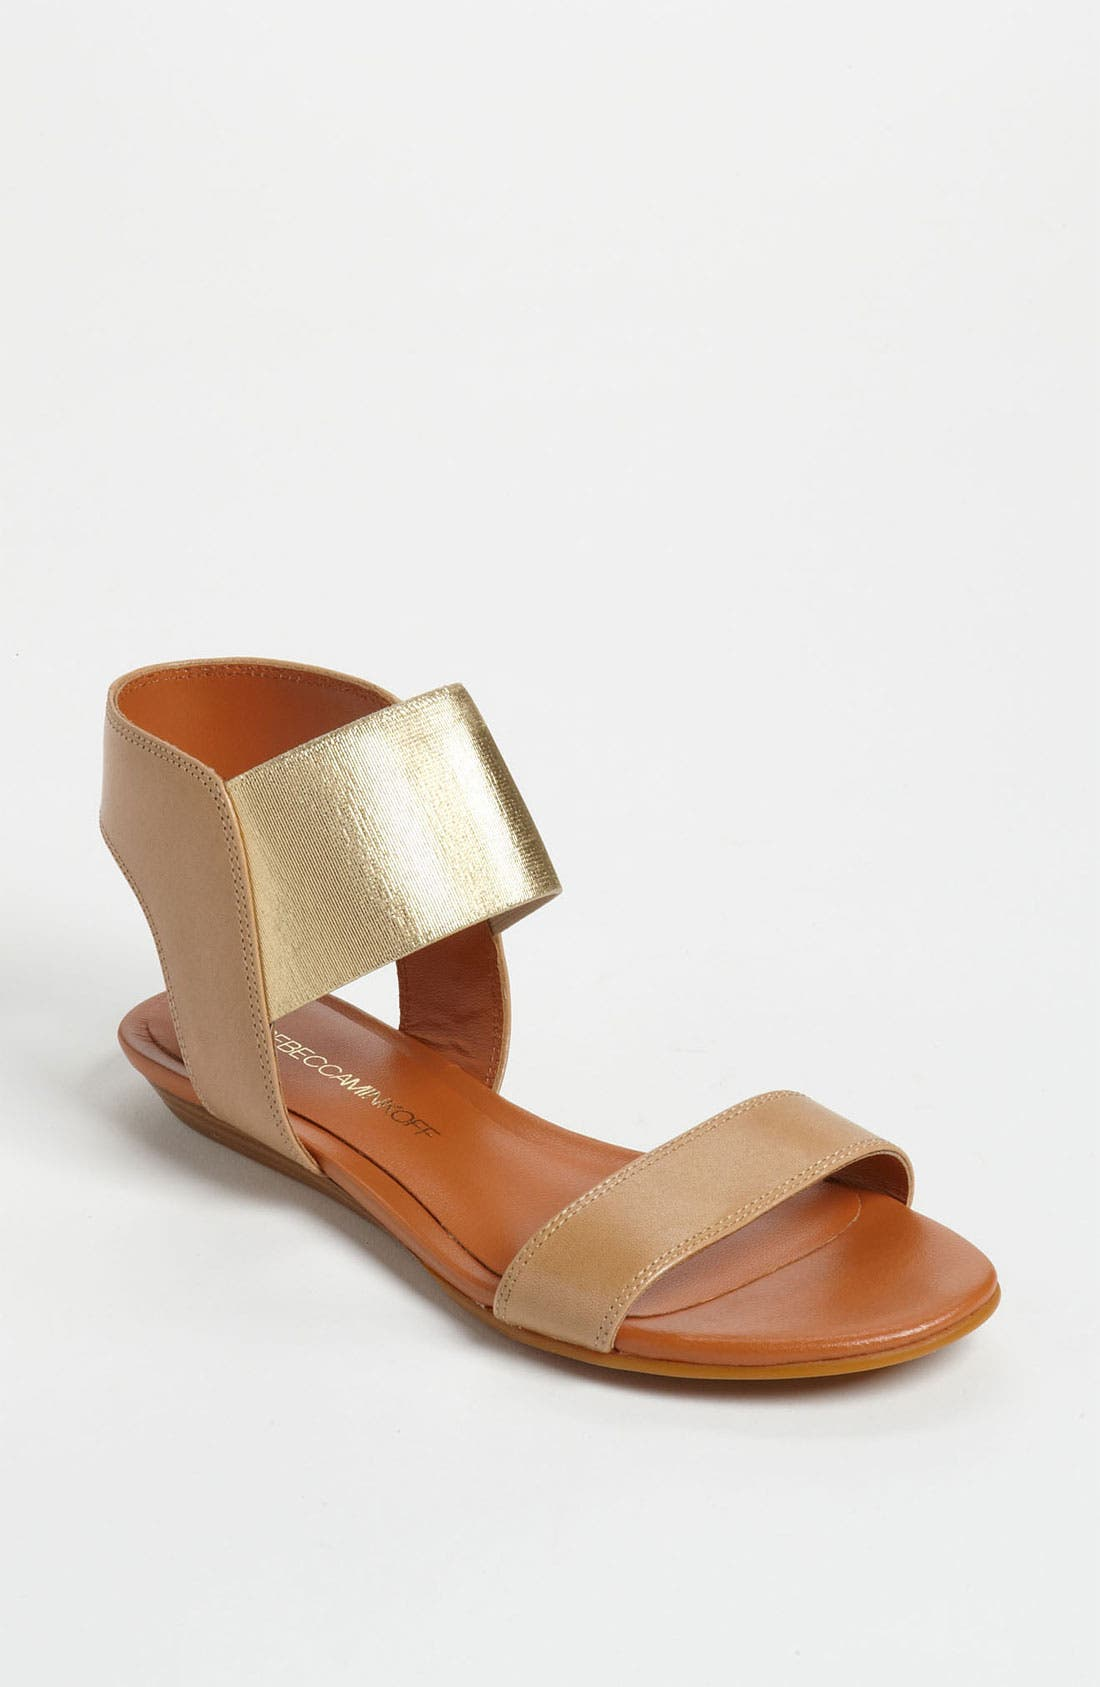 Alternate Image 1 Selected - Rebecca Minkoff 'Bazzle' Sandal (Online Only)